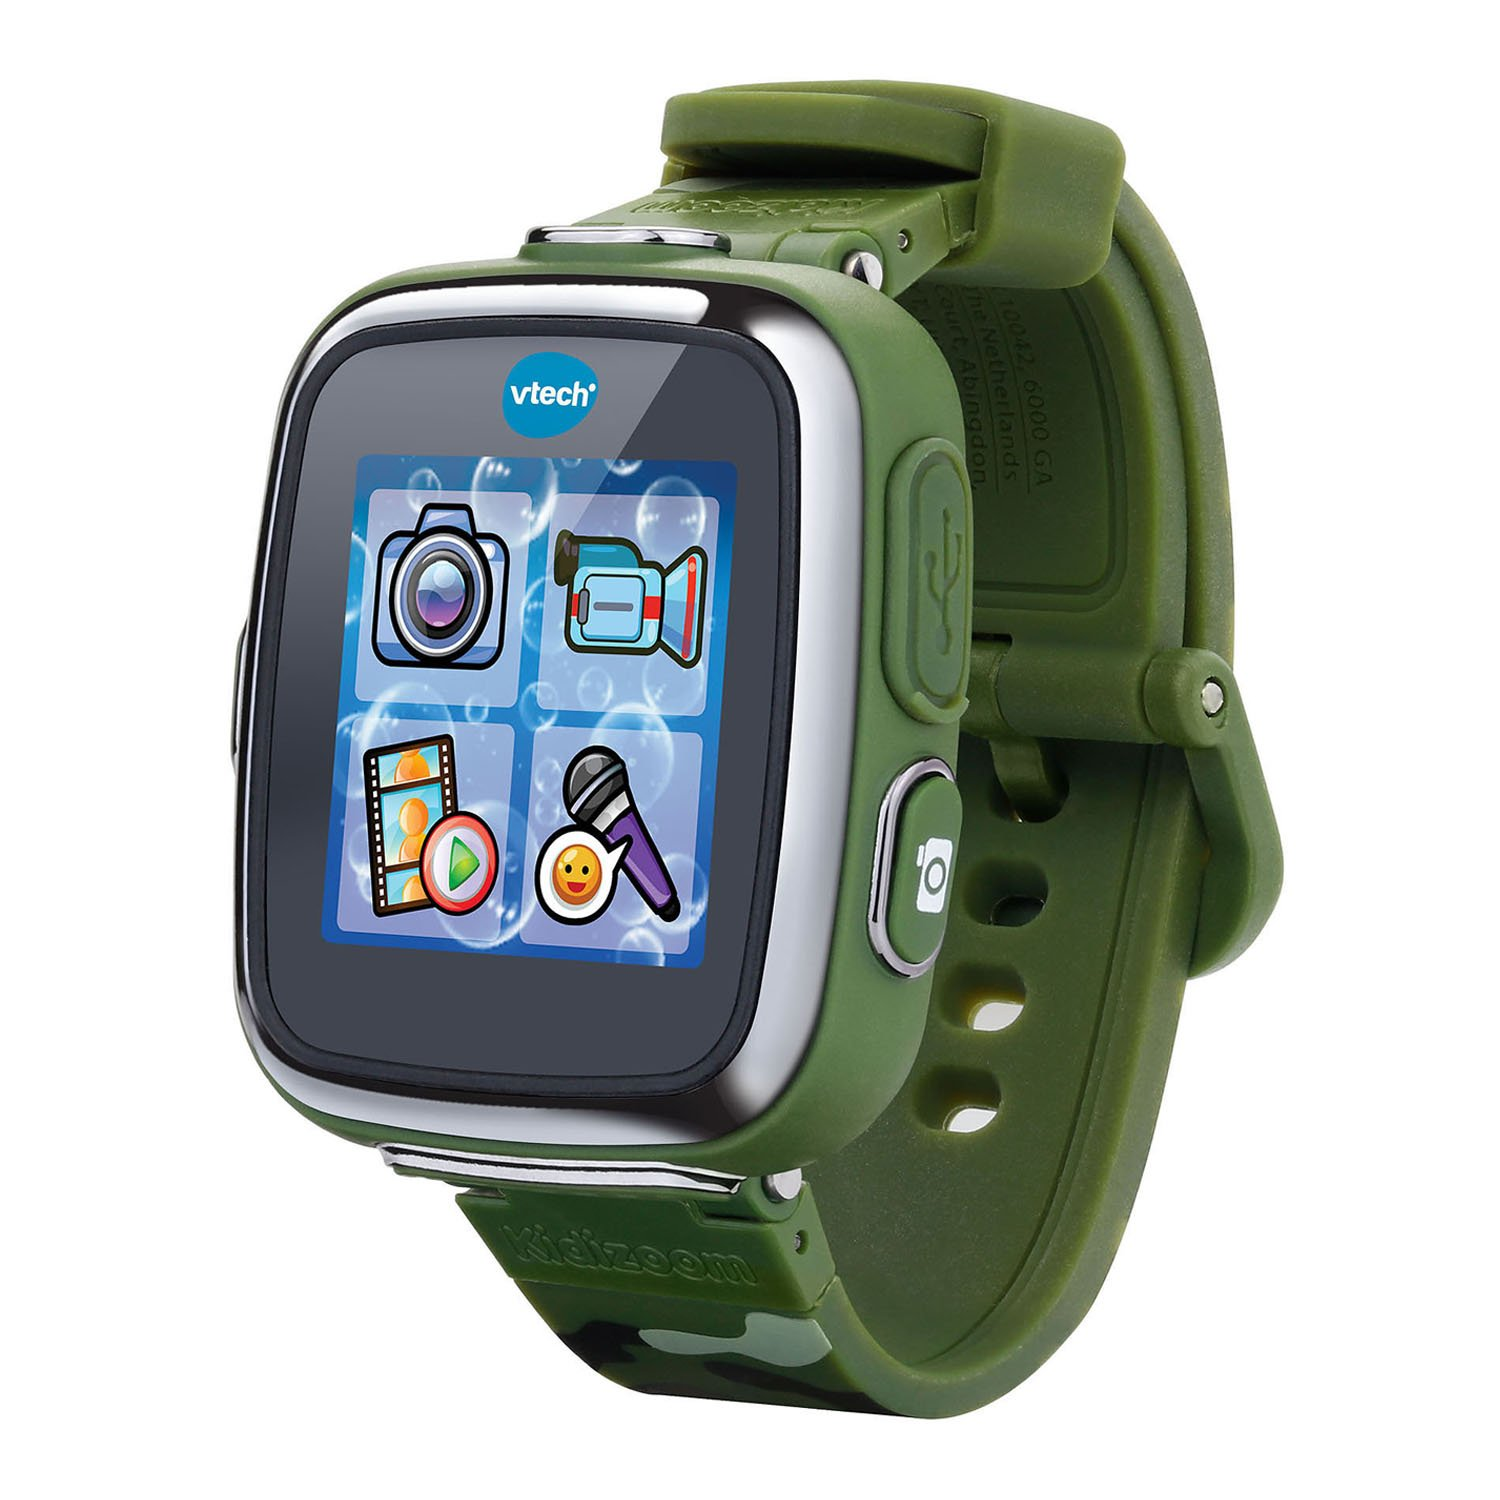 VTech Kidizoom Smartwatch DX - Camouflage - Online Exclusive by VTech (Image #1)